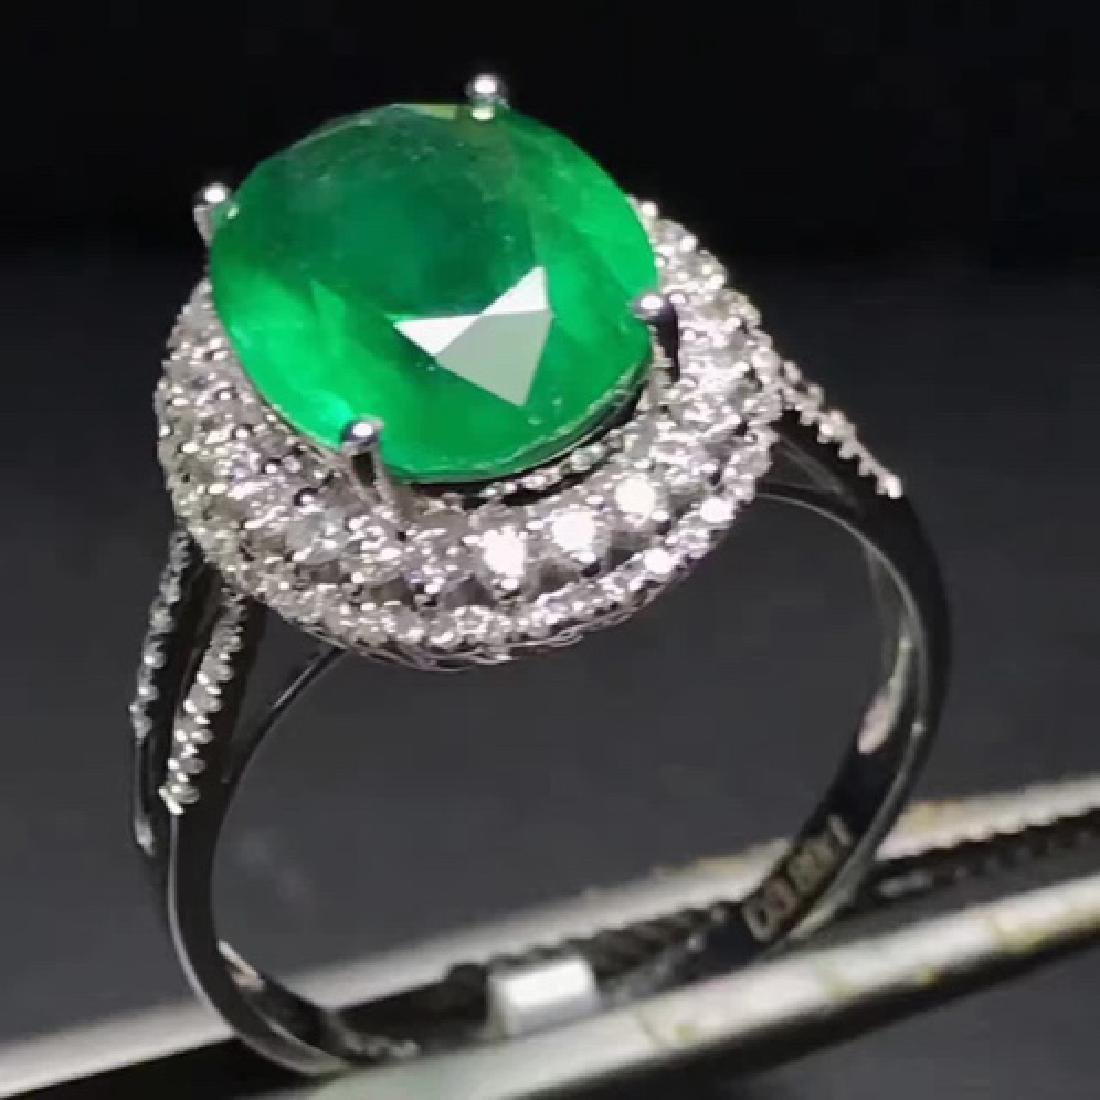 COLOMBIA EMERALD RING - 4